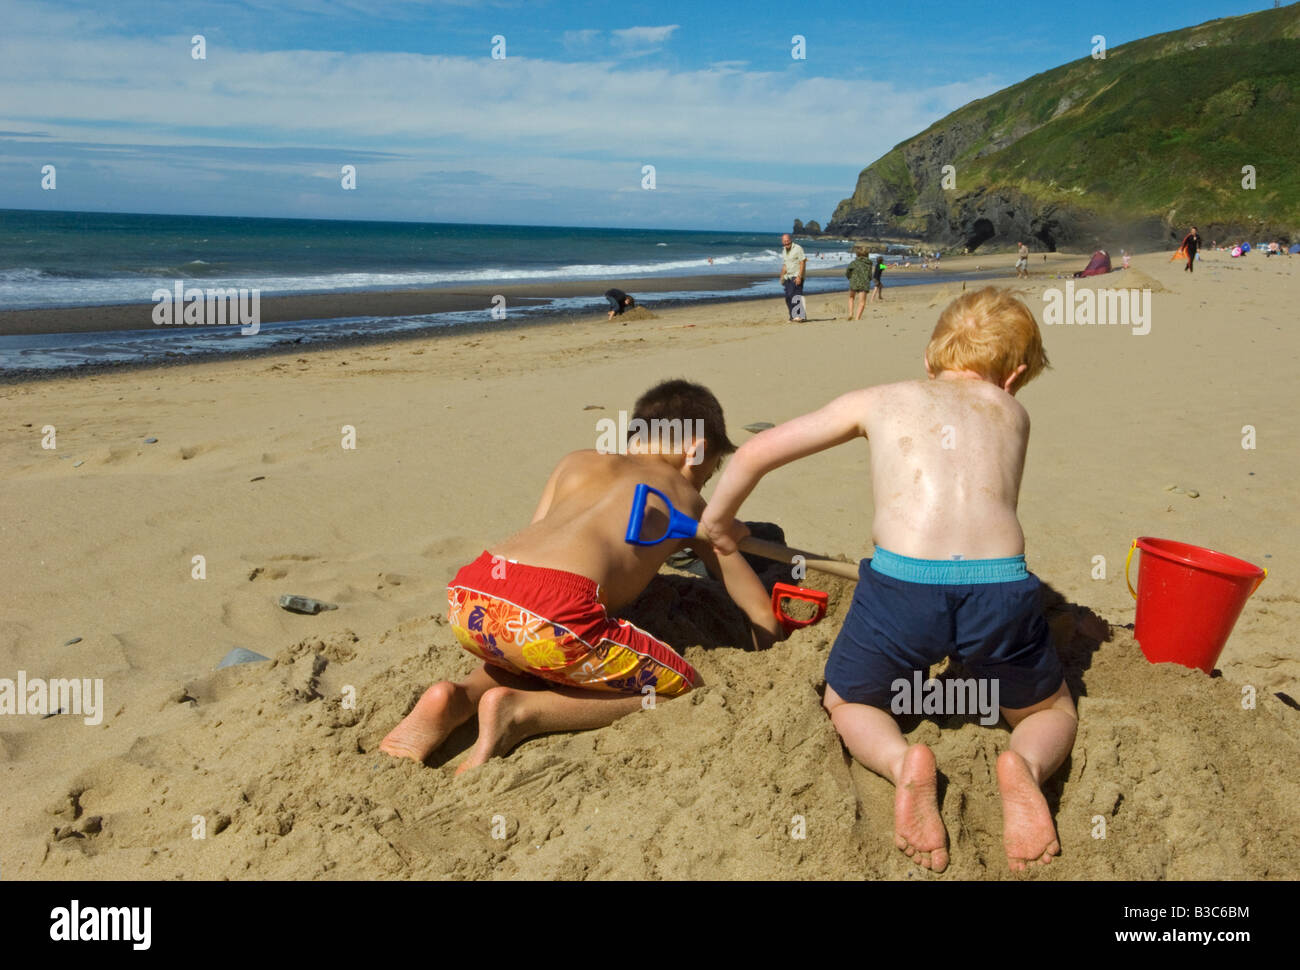 UK, Wales, Ceredigion. Two young boys build a sandcastle on Penbryn Beach in Cardiganshire. - Stock Image